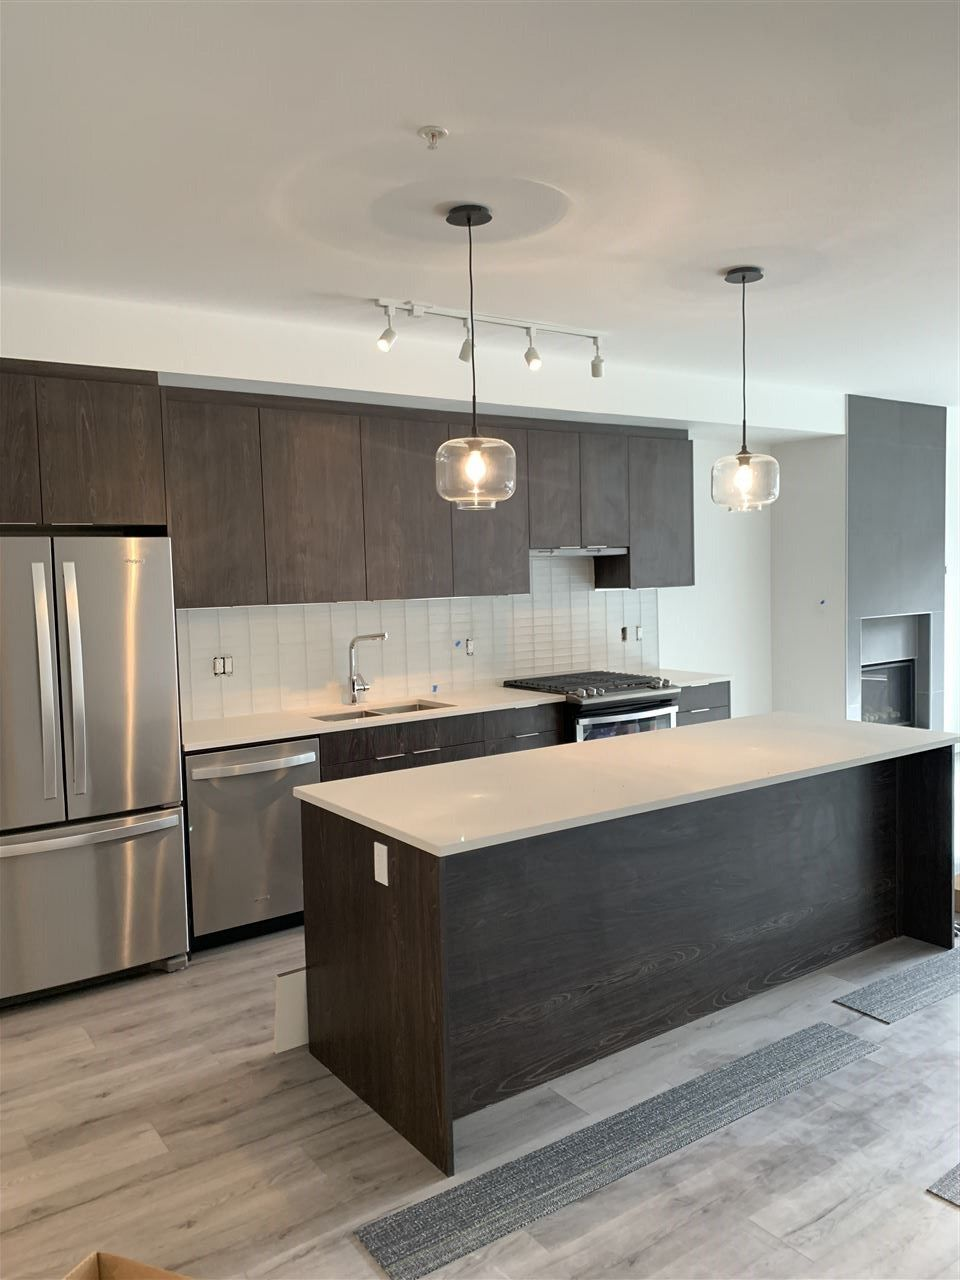 """Main Photo: 210 38167 CLEVELAND Avenue in Squamish: Downtown SQ Condo for sale in """"CLEVELAND GARDENS"""" : MLS®# R2552551"""